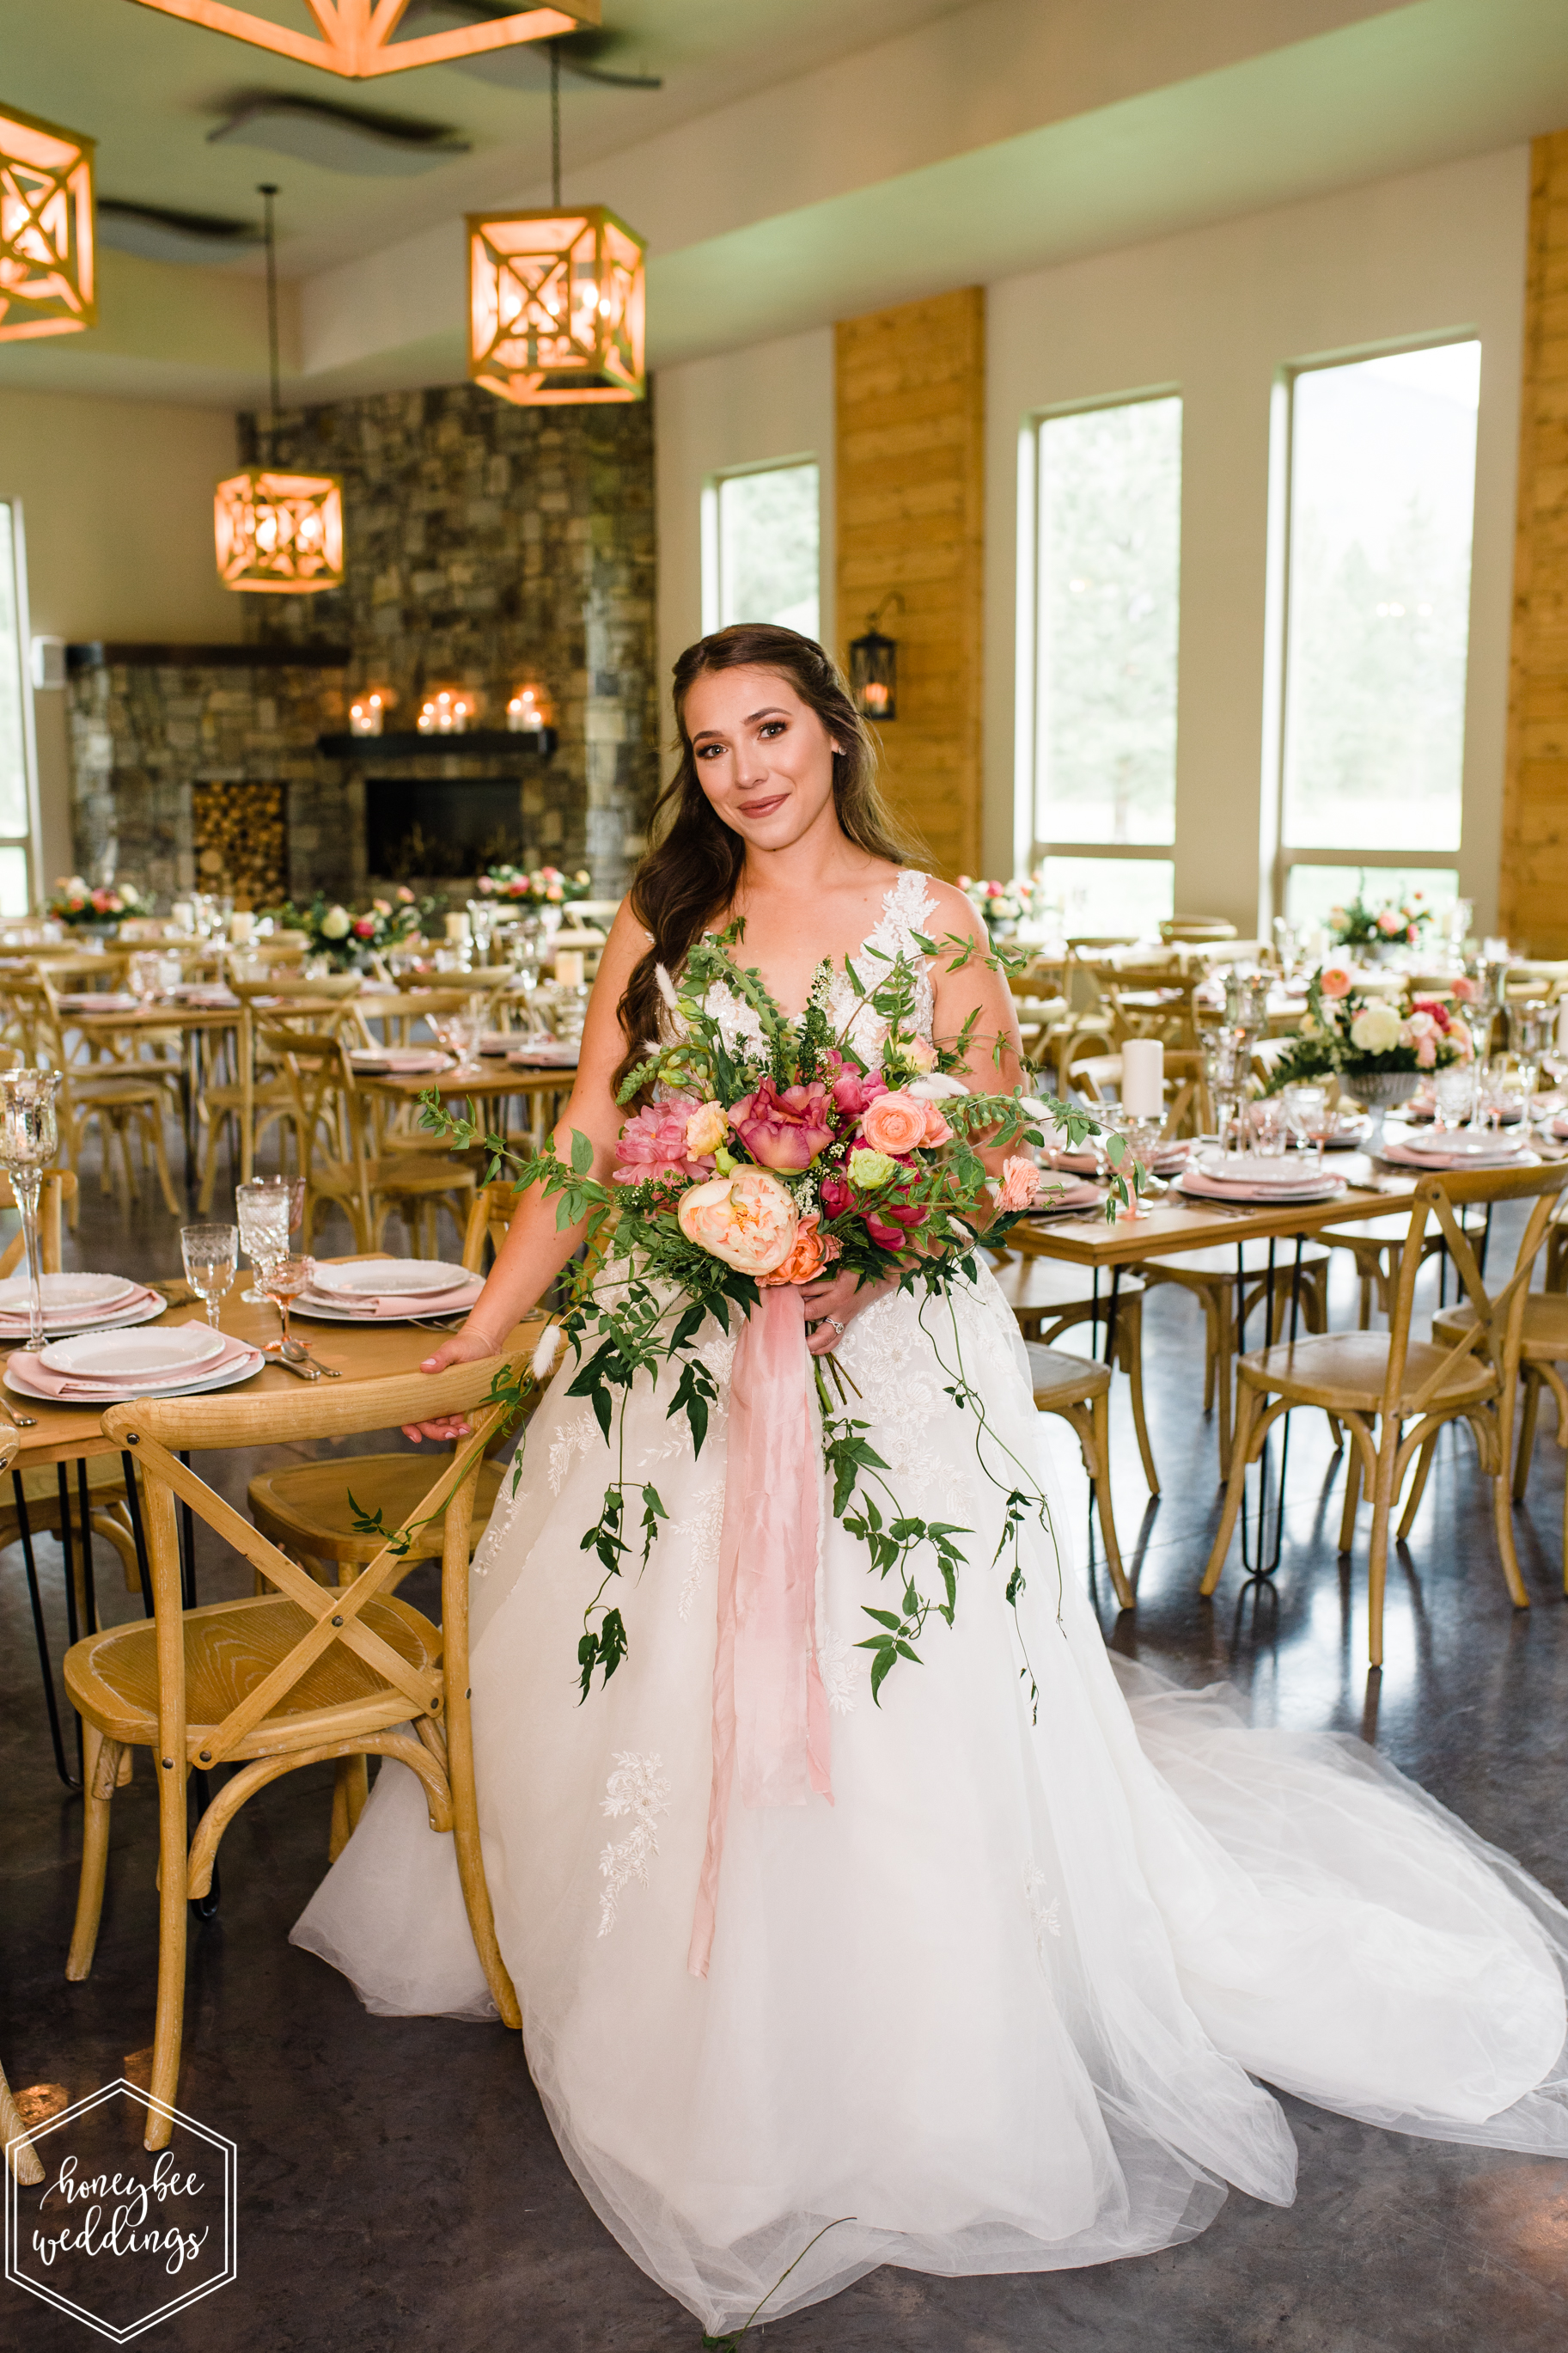 039Coral Mountain Wedding at White Raven_Honeybee Weddings_May 23, 2019-175.jpg